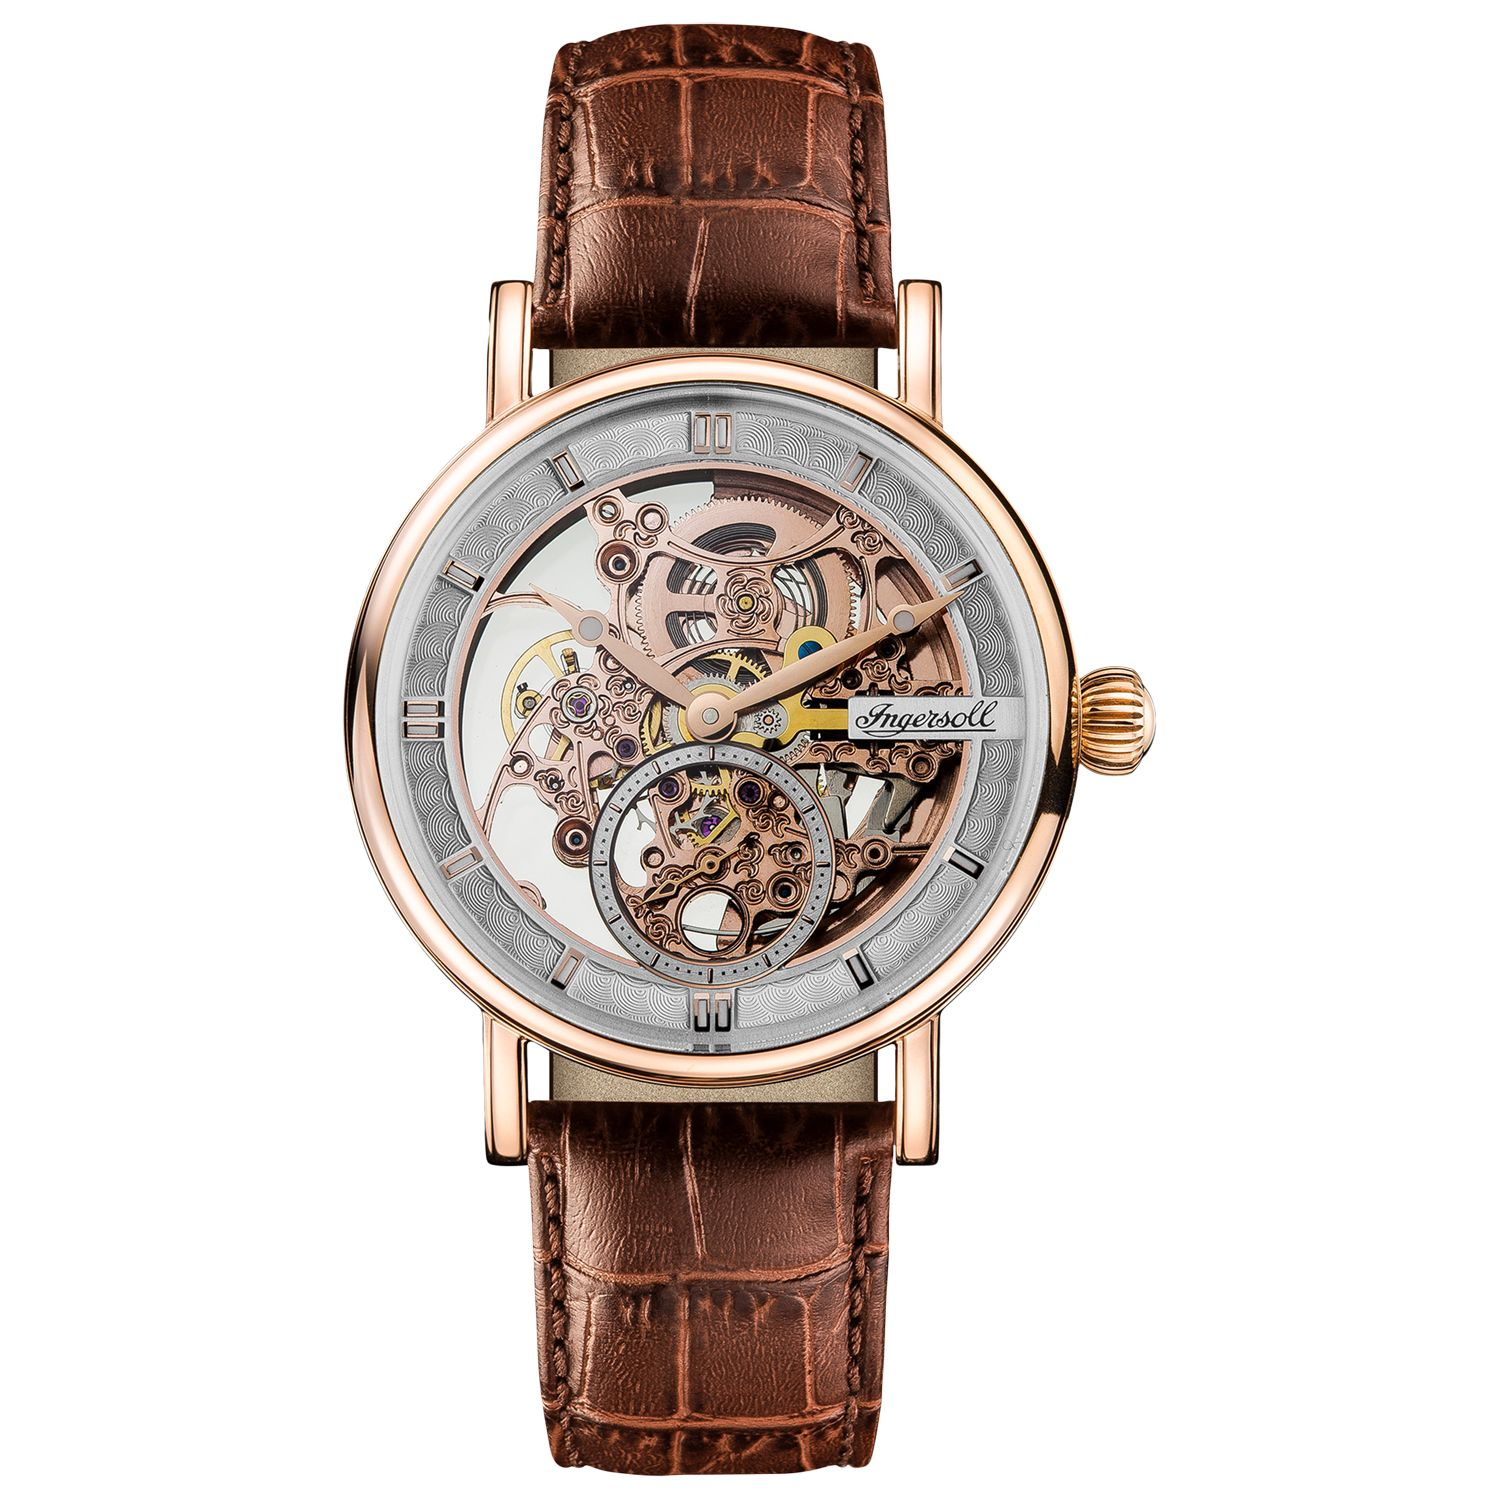 Ingersoll Ingersoll Men's The Herald Skeleton Automatic Leather Strap Watch